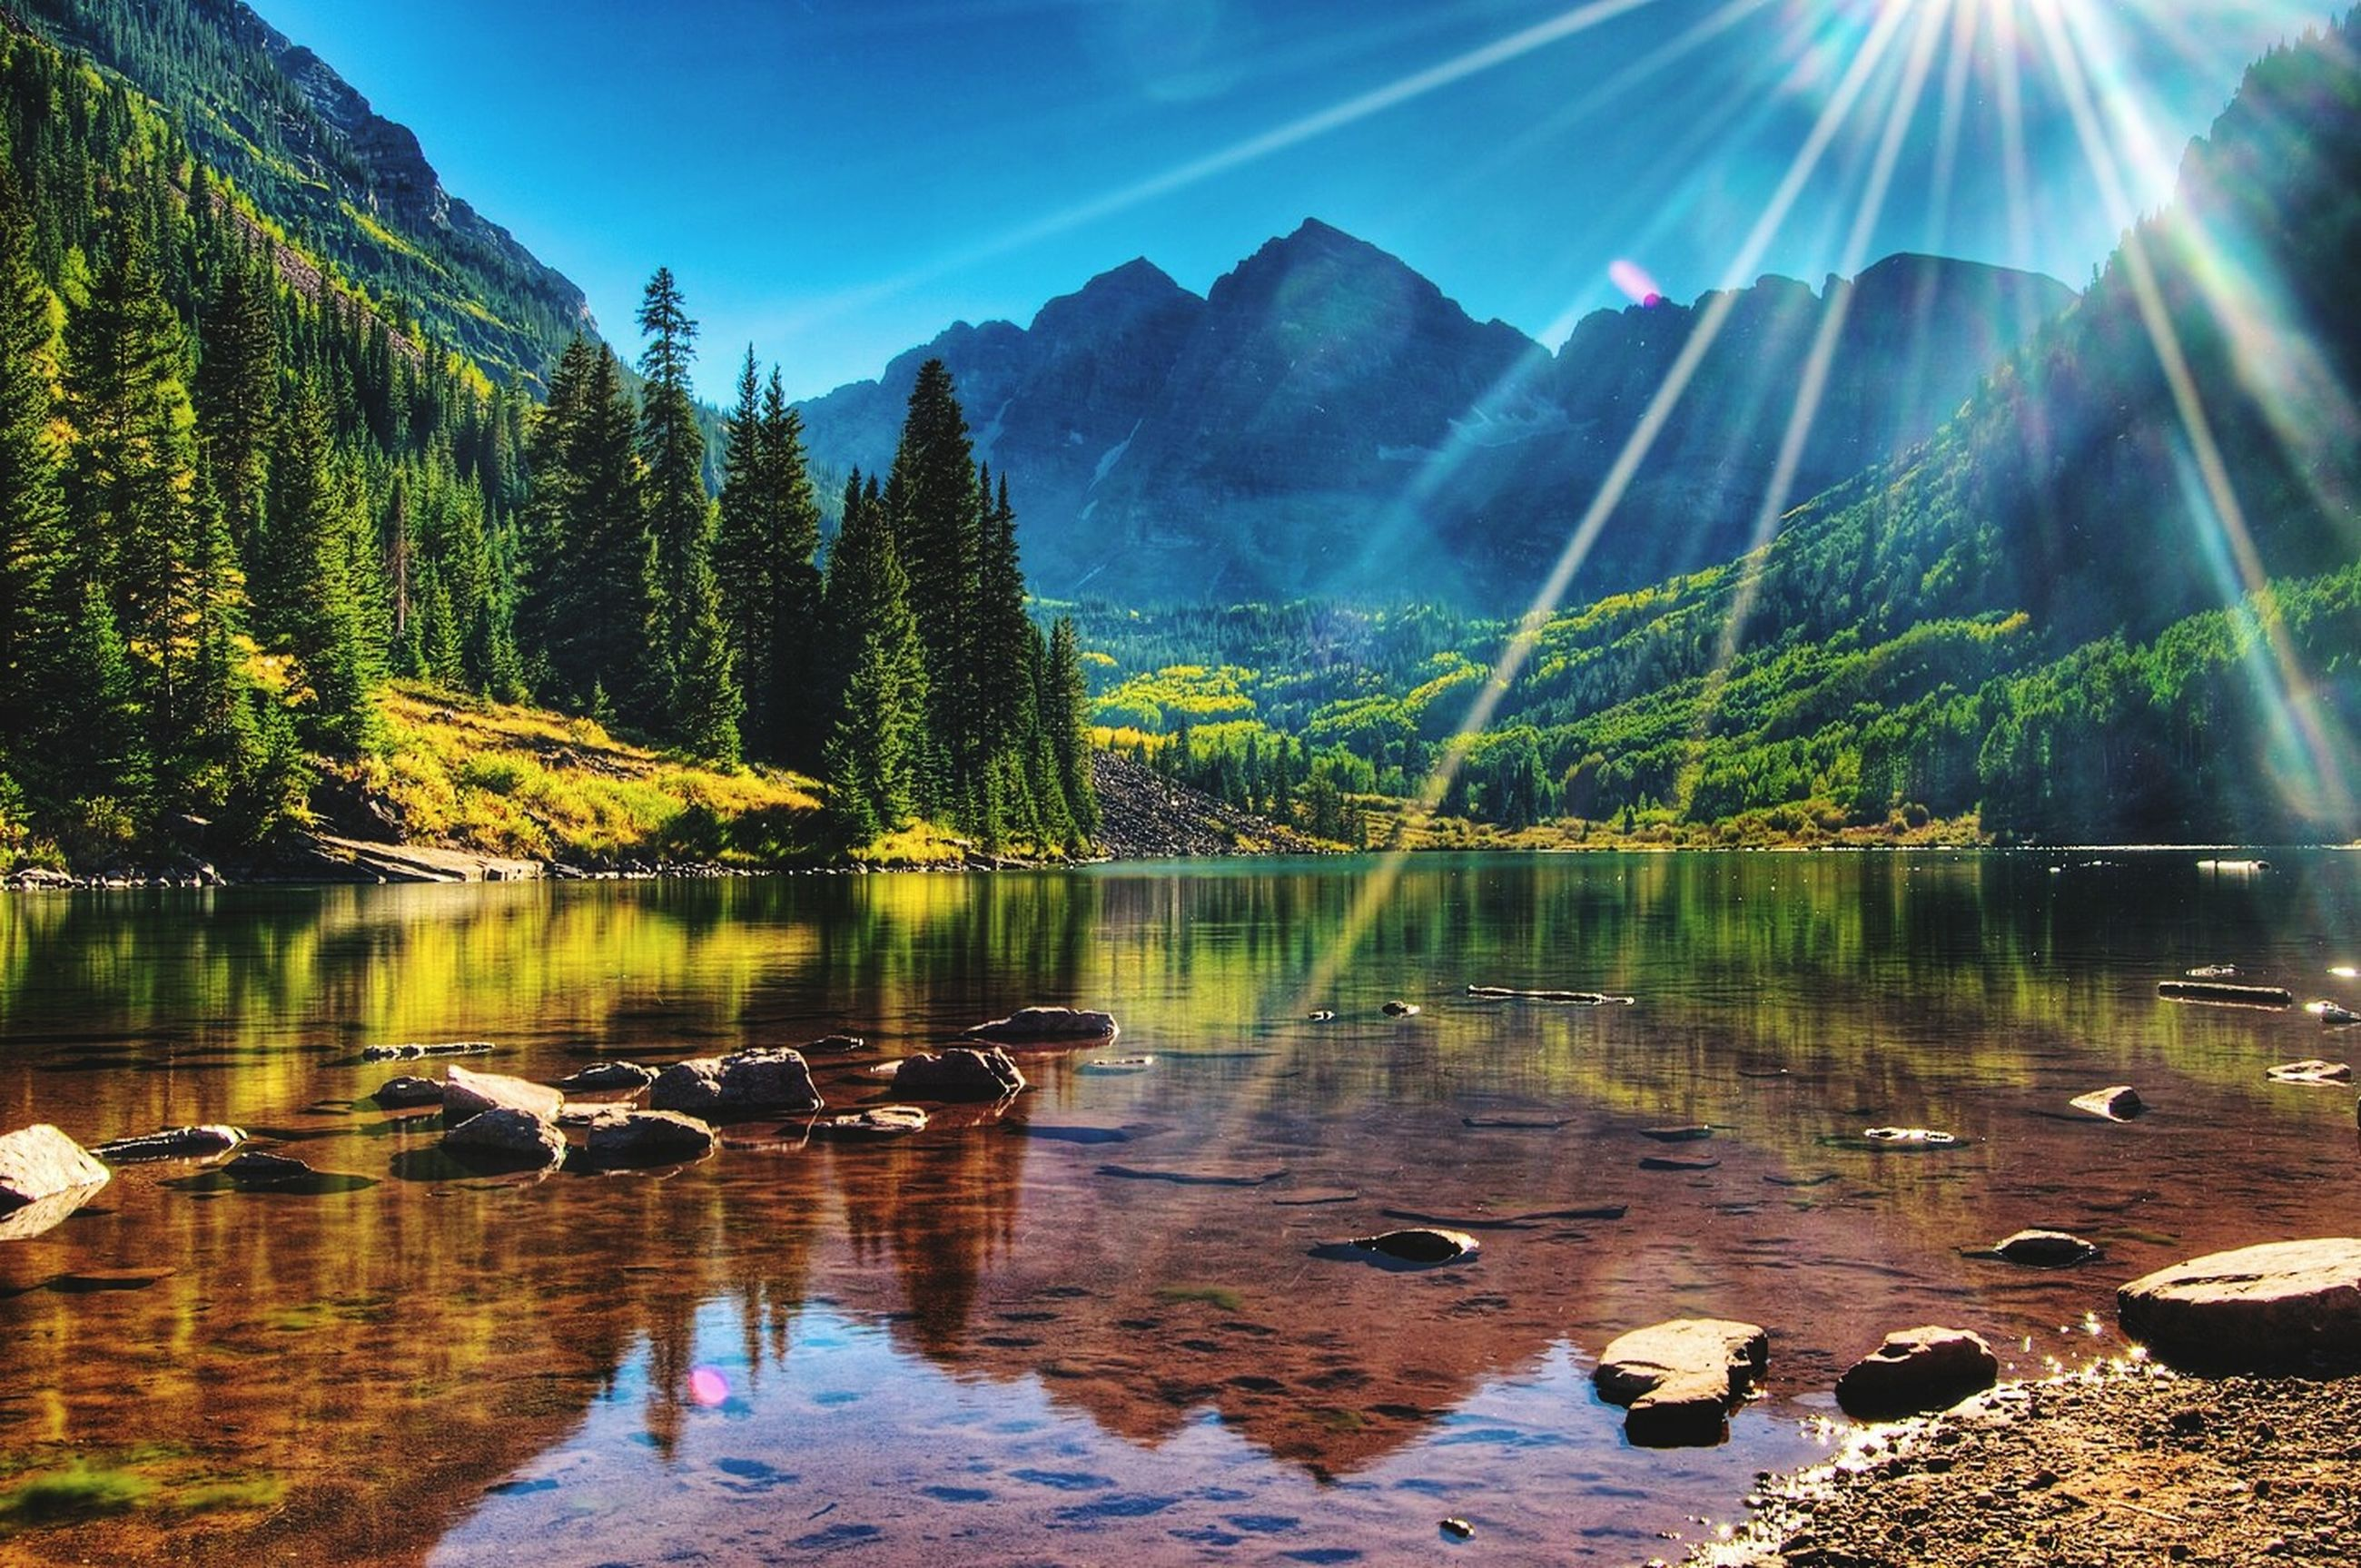 sun, water, tranquil scene, tranquility, reflection, sunbeam, sunlight, scenics, beauty in nature, lake, lens flare, tree, mountain, nature, idyllic, sunny, sky, non-urban scene, landscape, bright